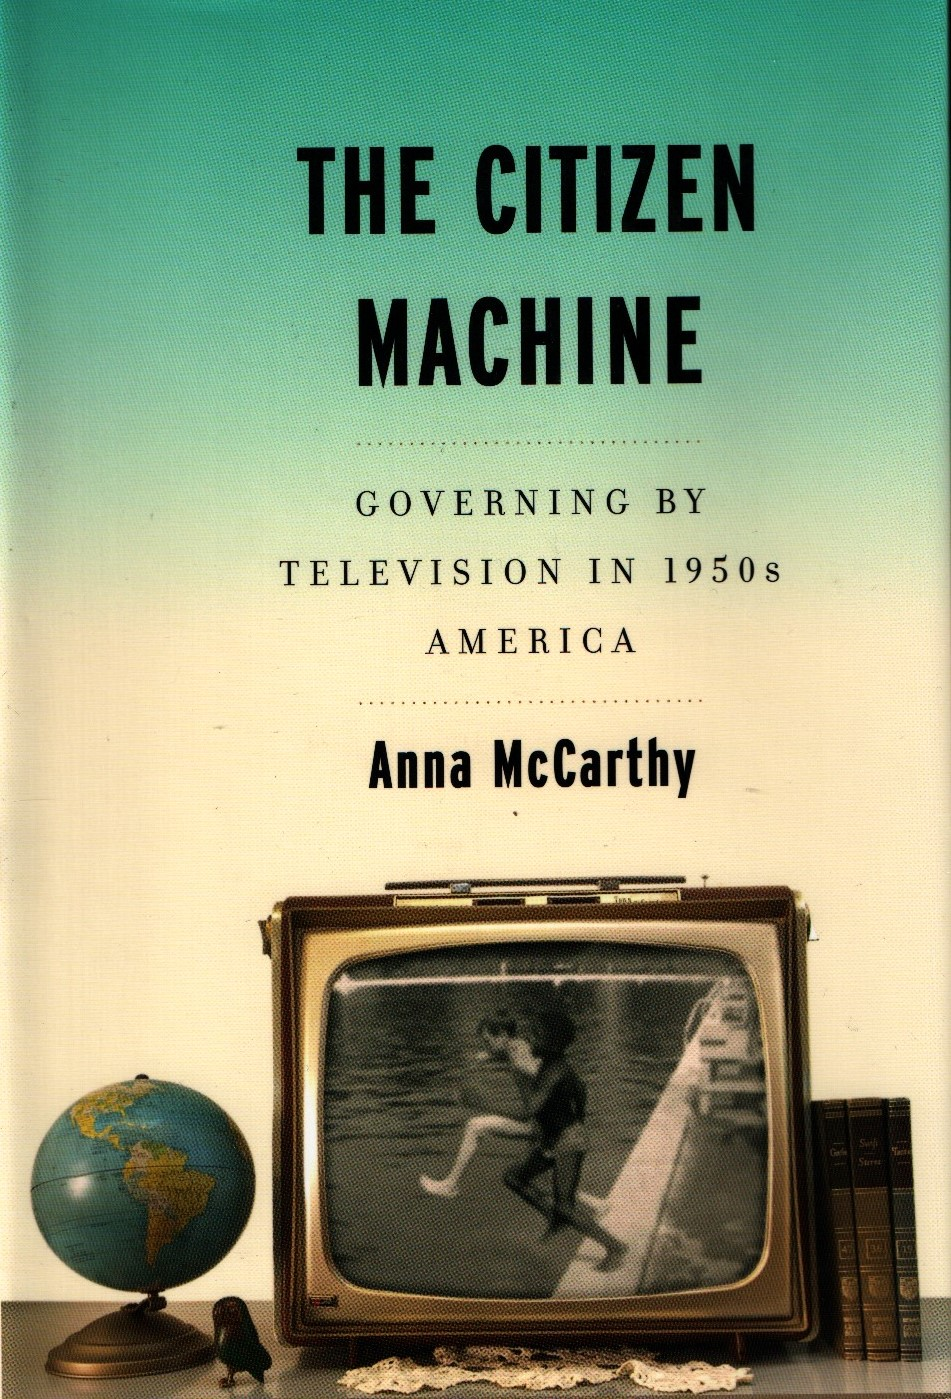 The Citizen Machine: Governing by Television in 1950s America